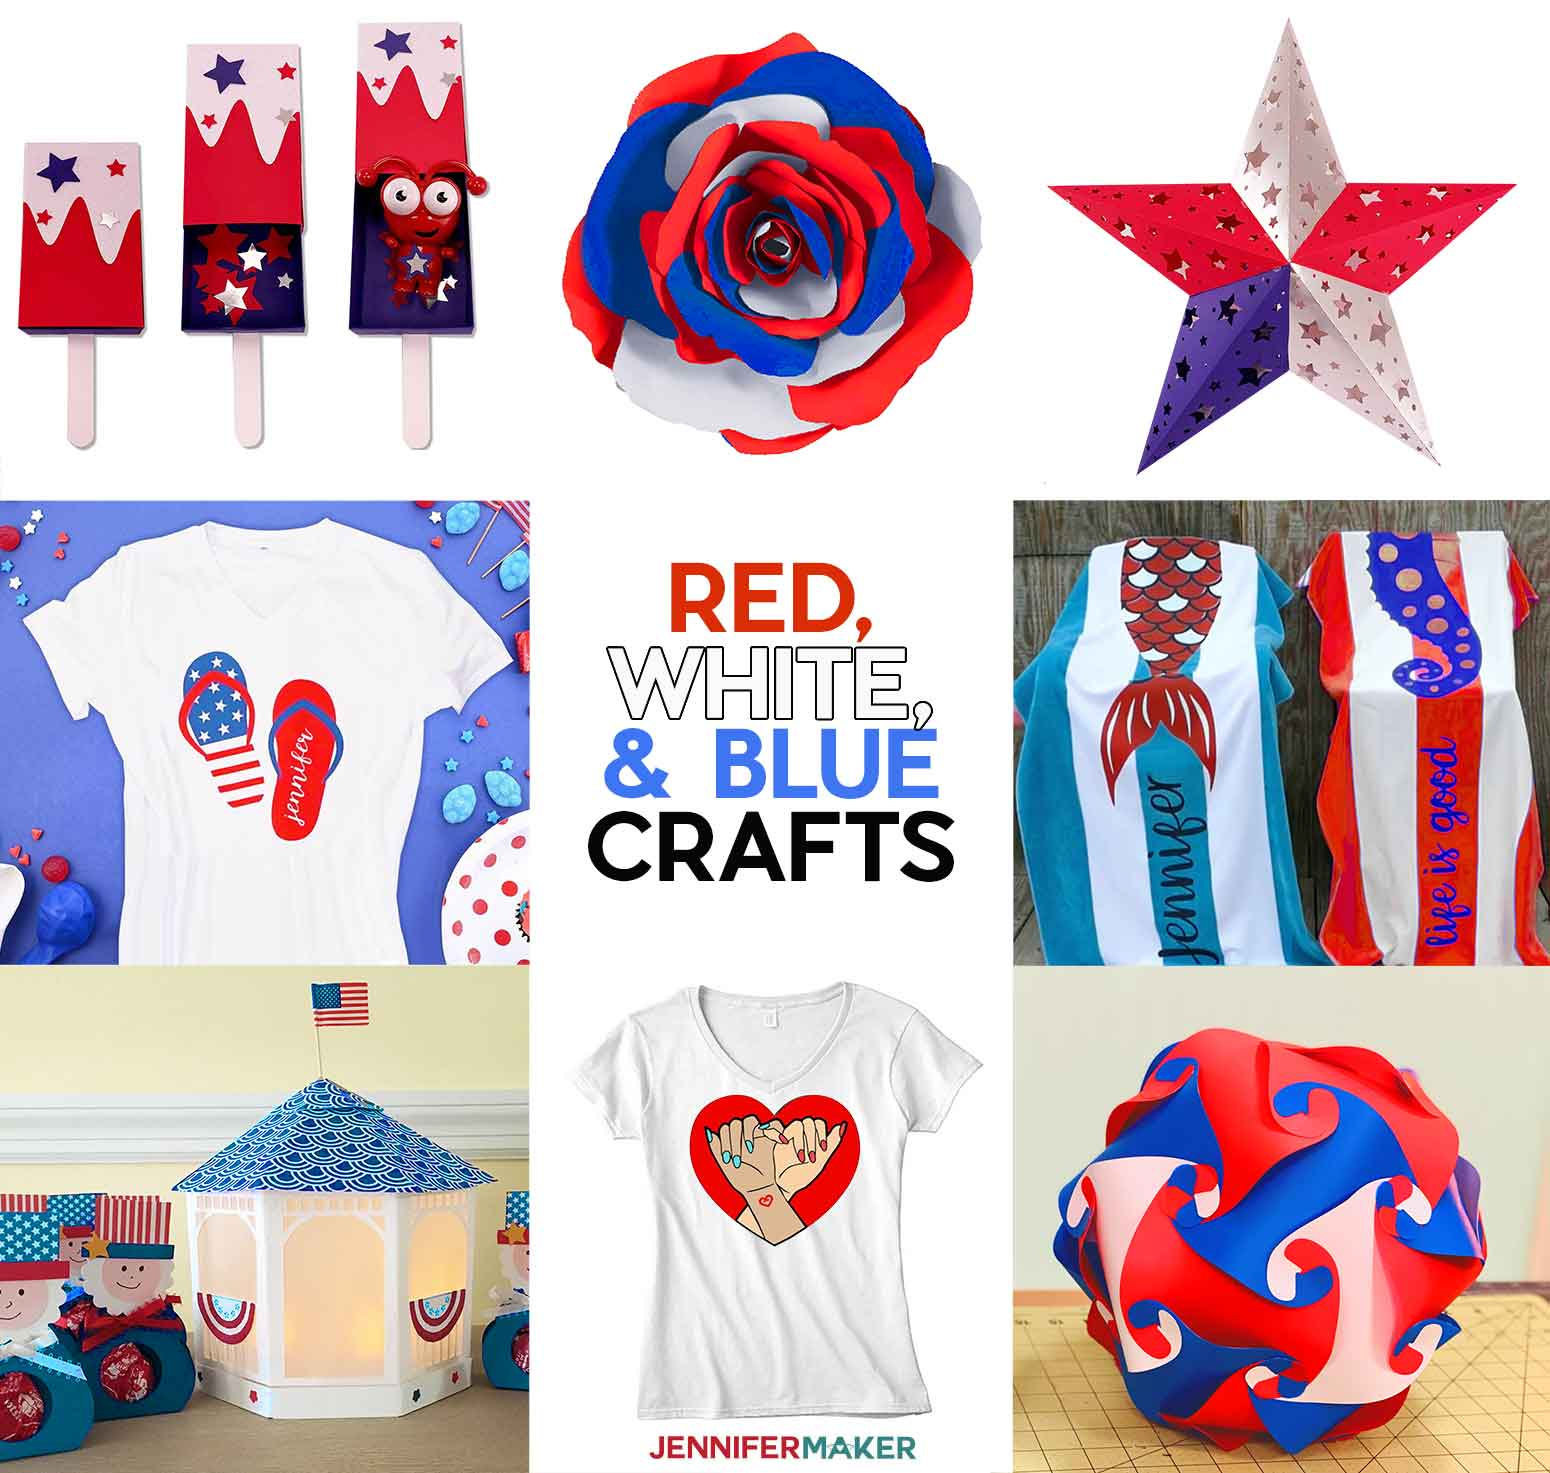 Red, white, and blue craft ideas you can make on the Cricut with free SVG cut files and printable patterns